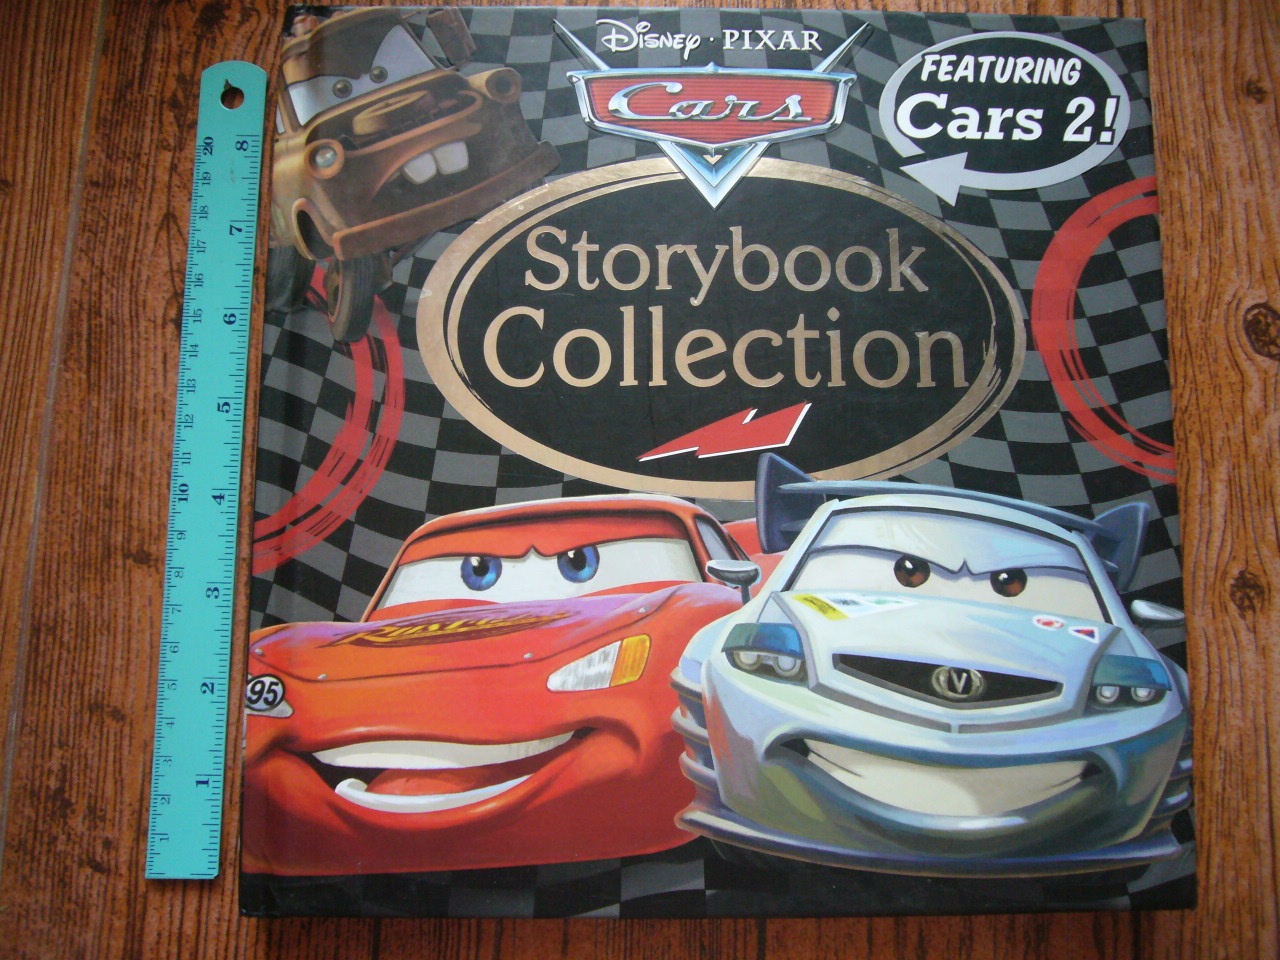 CARS Storybook Collection (Featuring Cars 2)